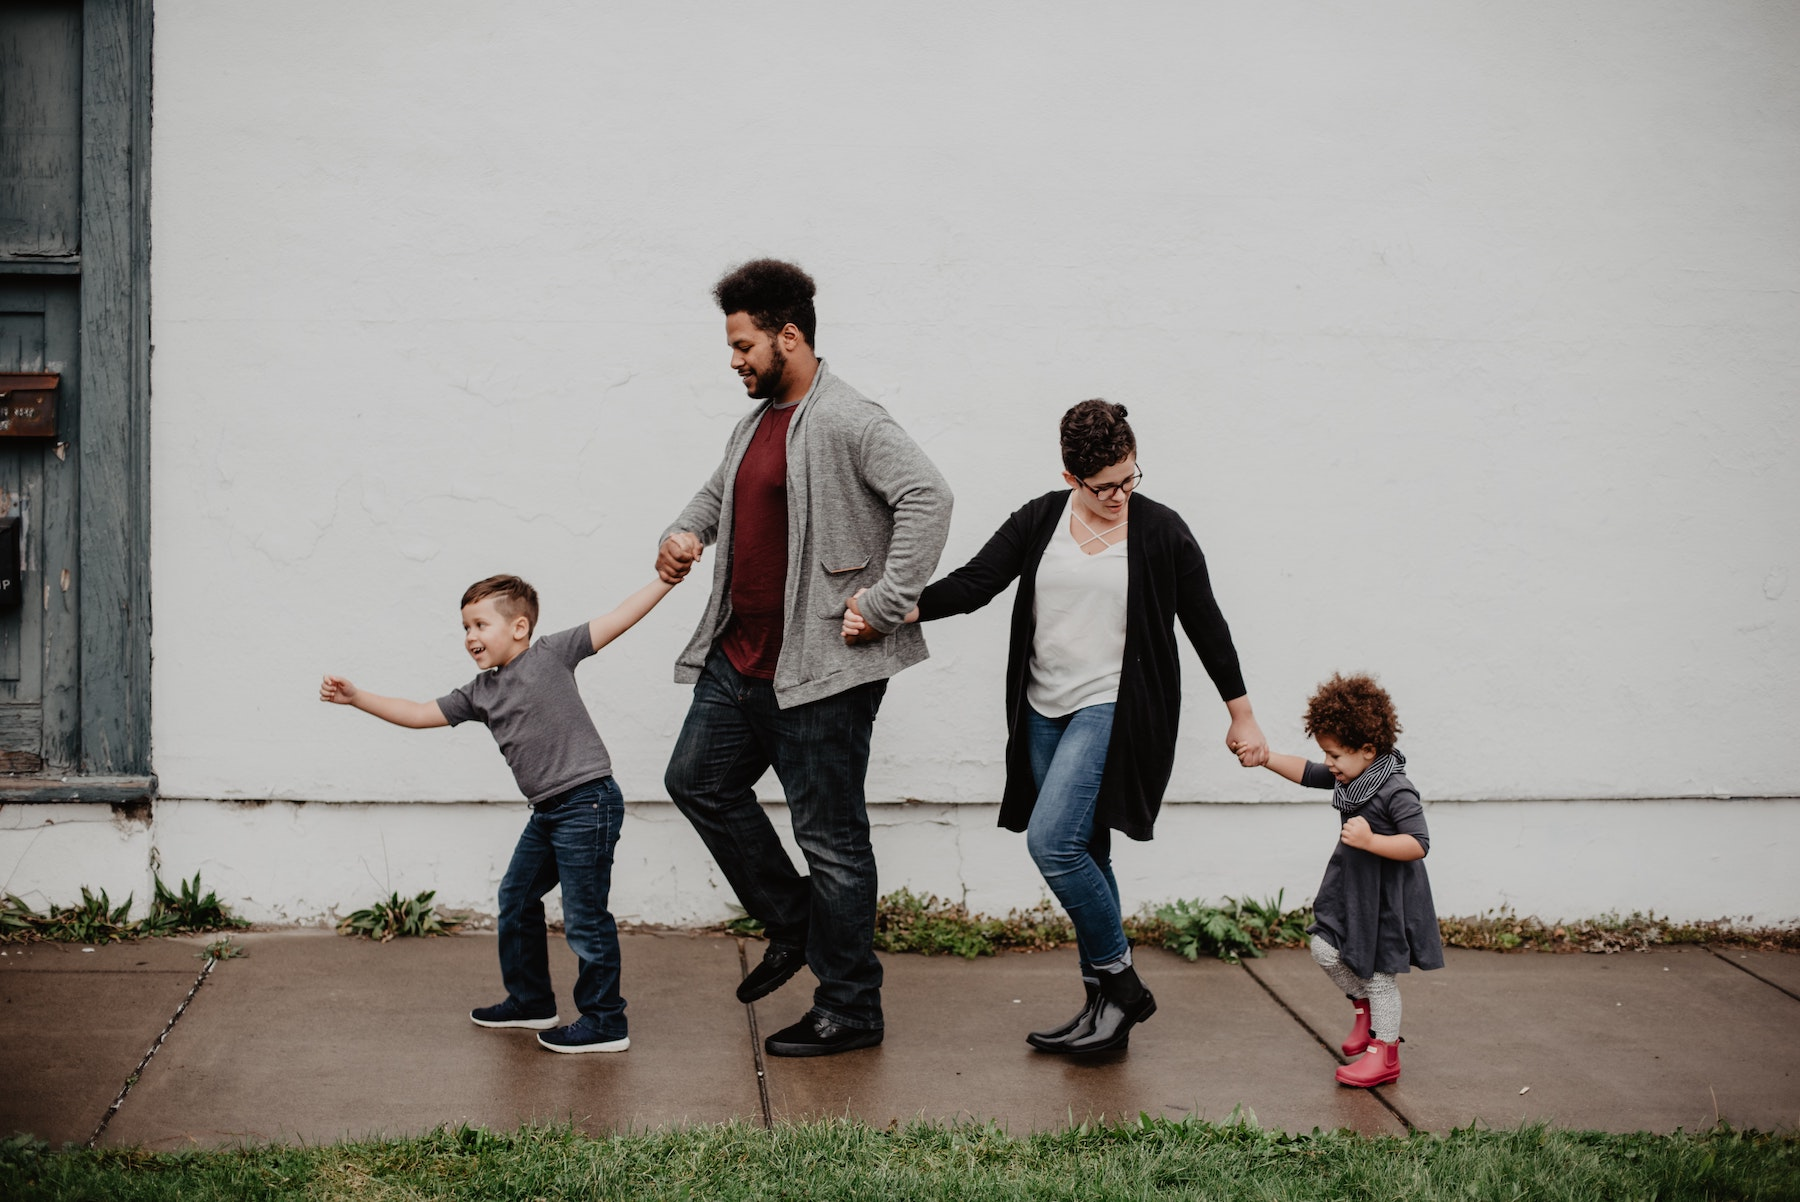 Families Only Spend 37 Minutes Together a Day: Make Them Count